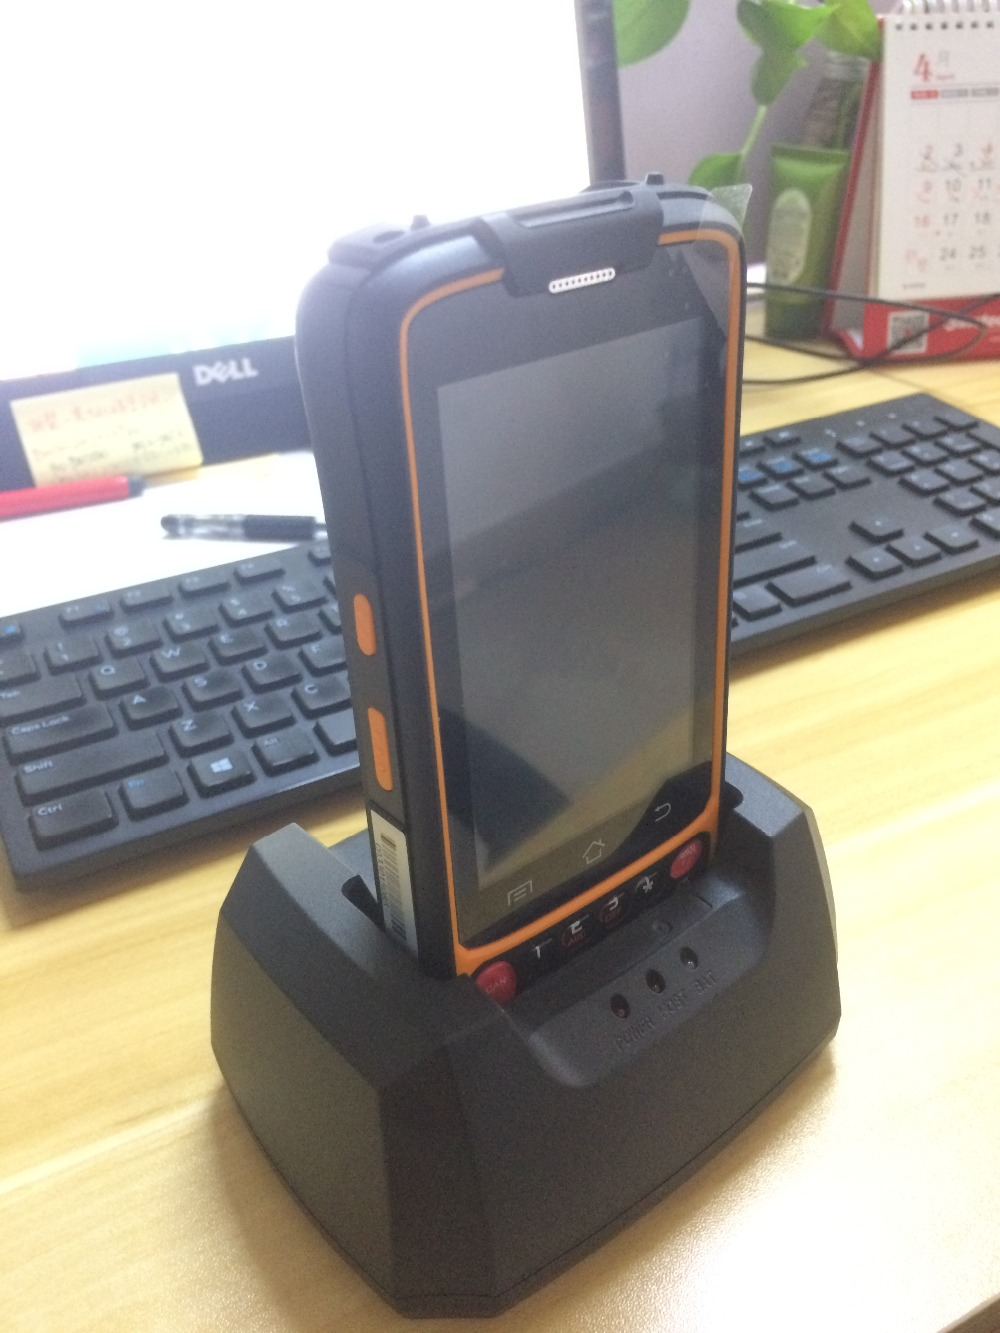 Handheld Data Collection PDA Terminal 4G Android Mobile 1D / 2D Barcode Scanner QR Code Reader with LF 125K / 134.5K RFID reader